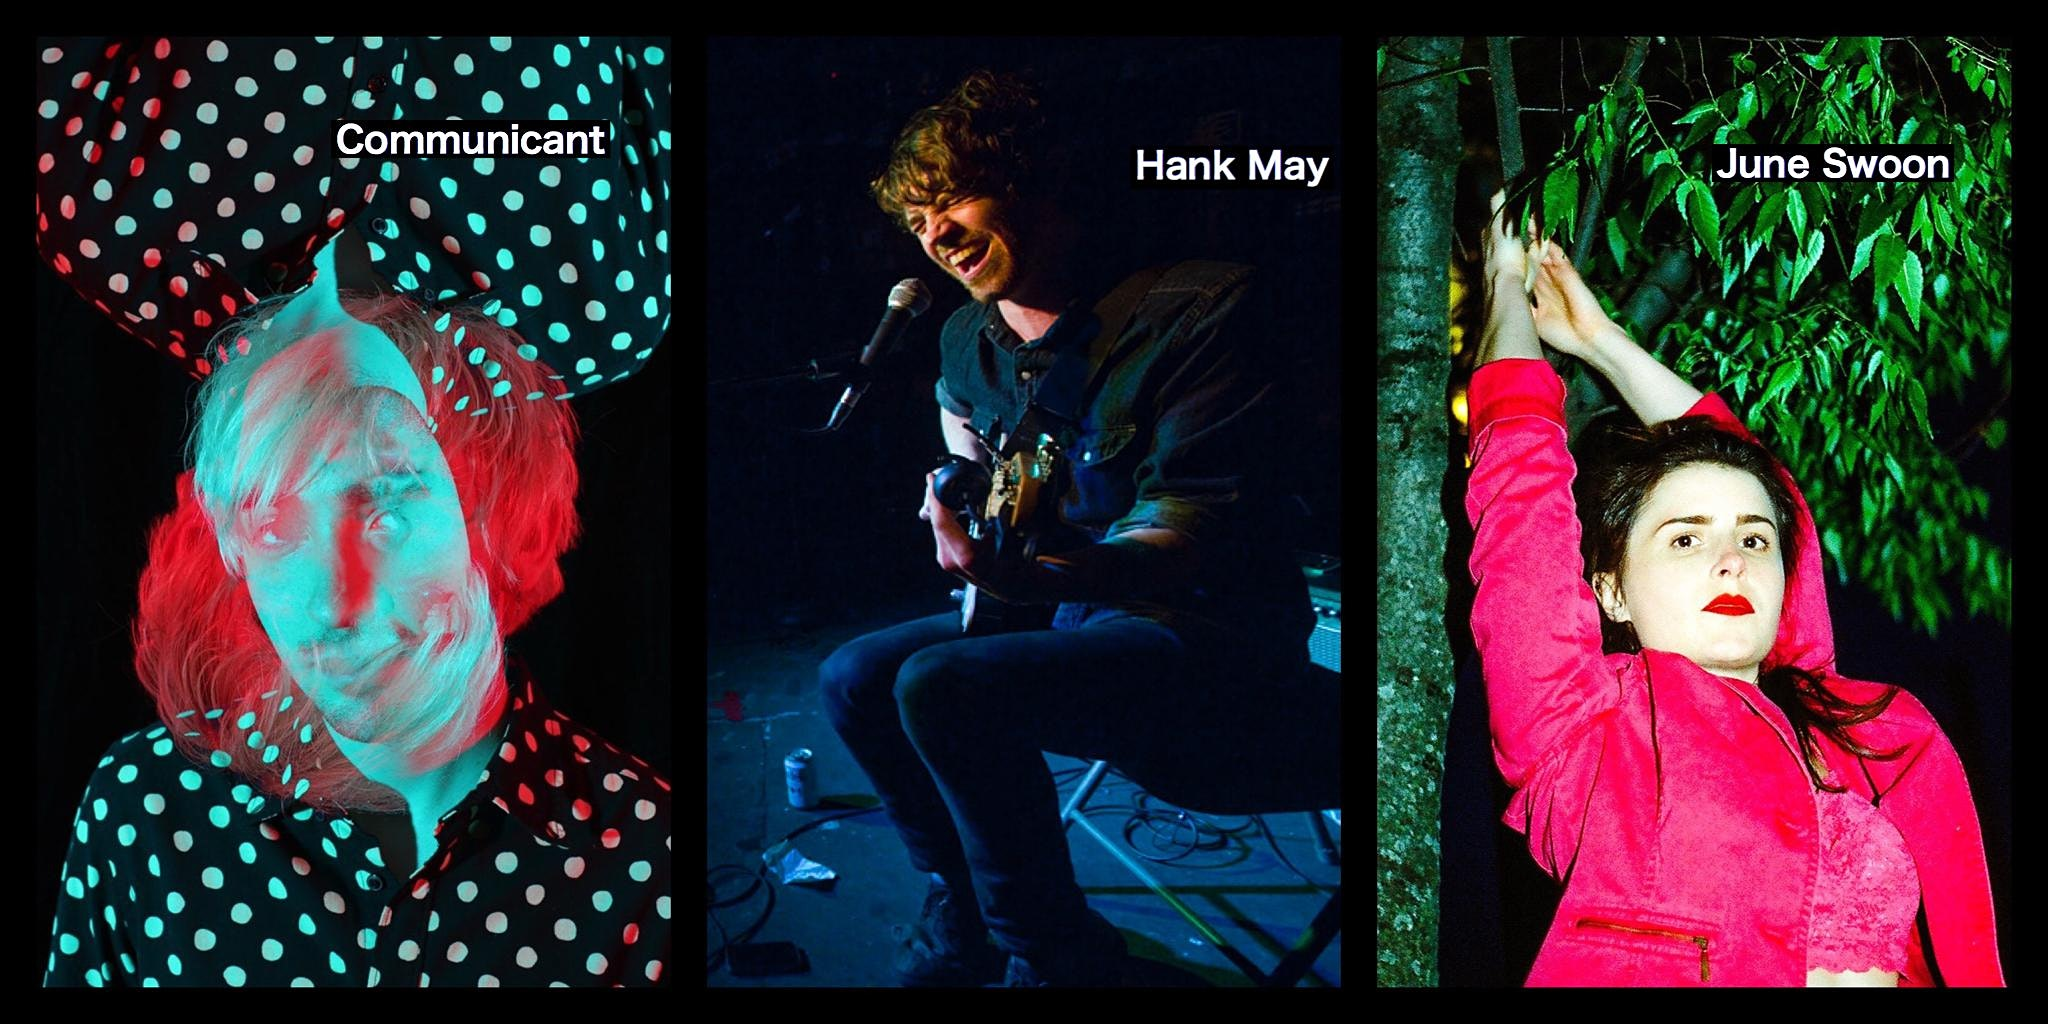 What The Sound Presents: Communicant, Hank May, June Swoon, Jerome